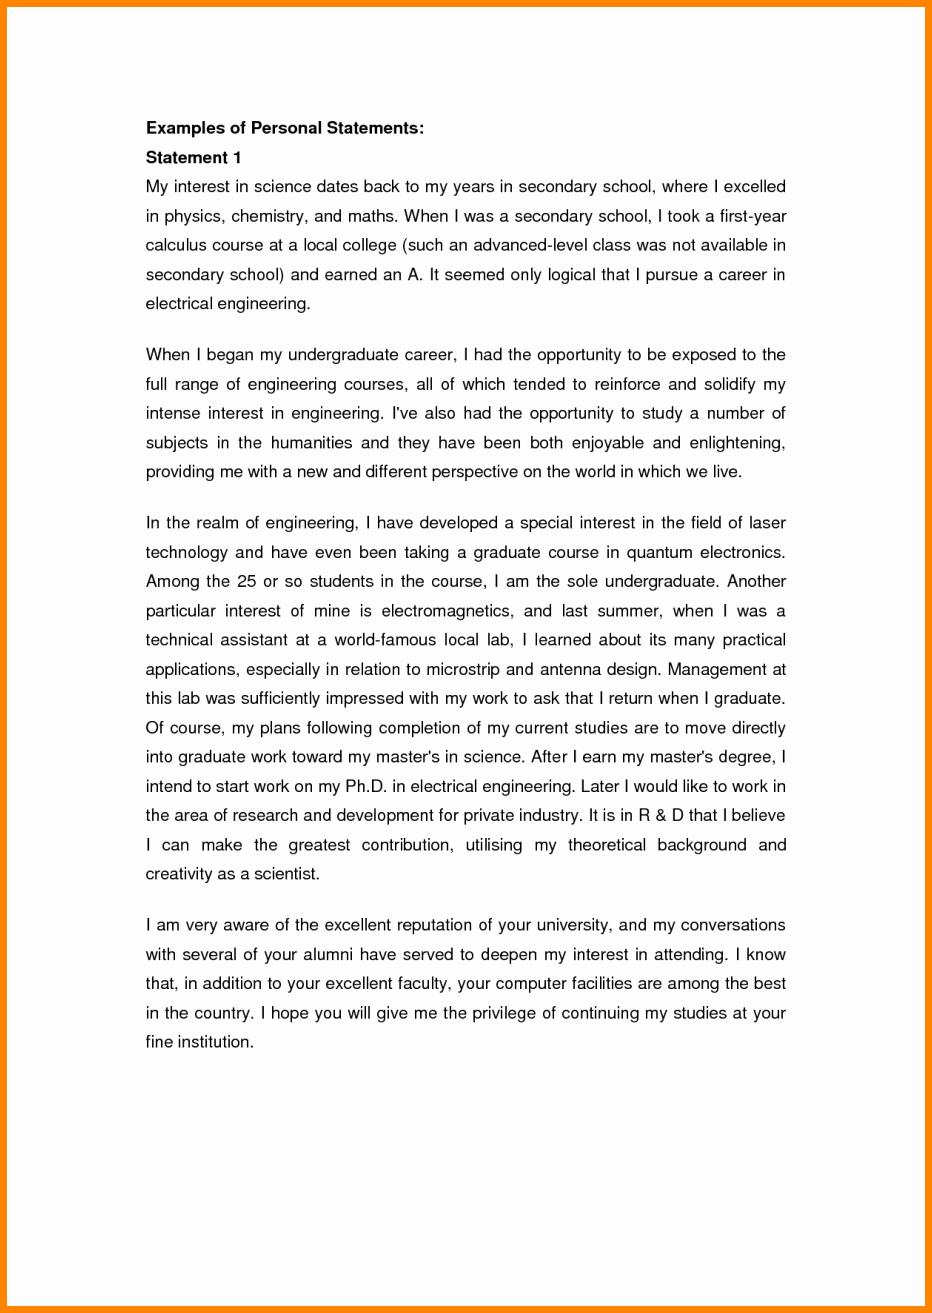 Personal Background Essay Examples Lovely 7 Examples Of Personal Statements